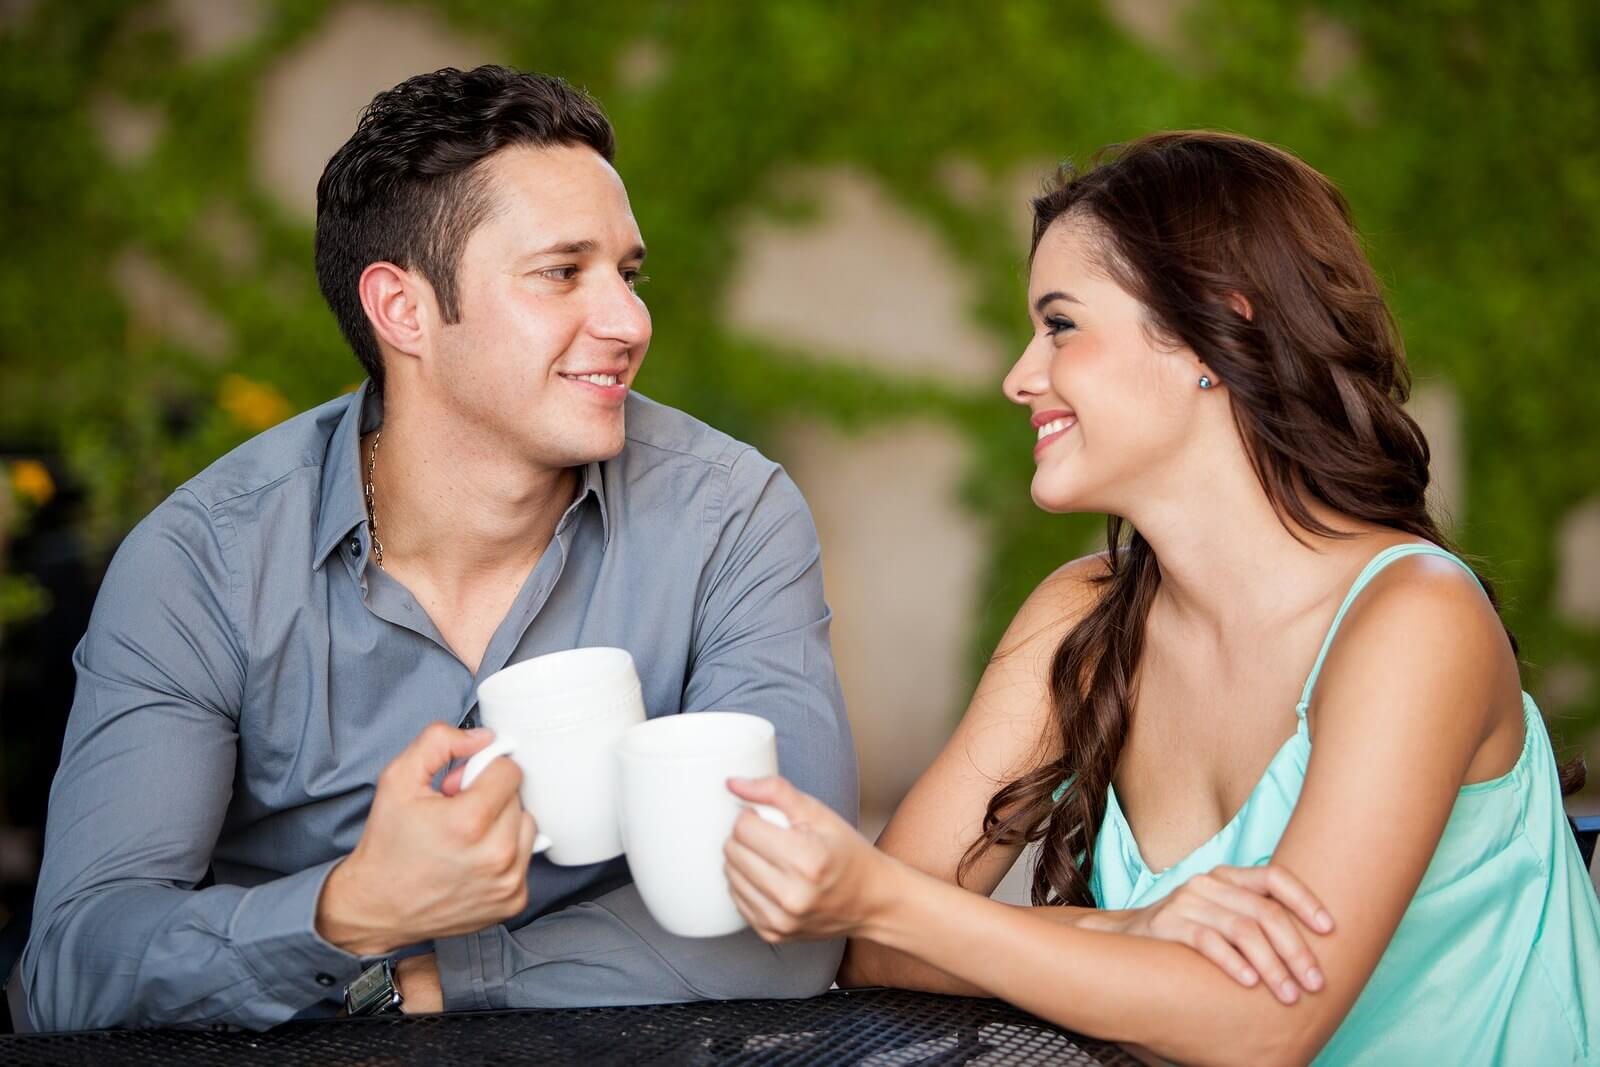 Few Important Tips to get first date right